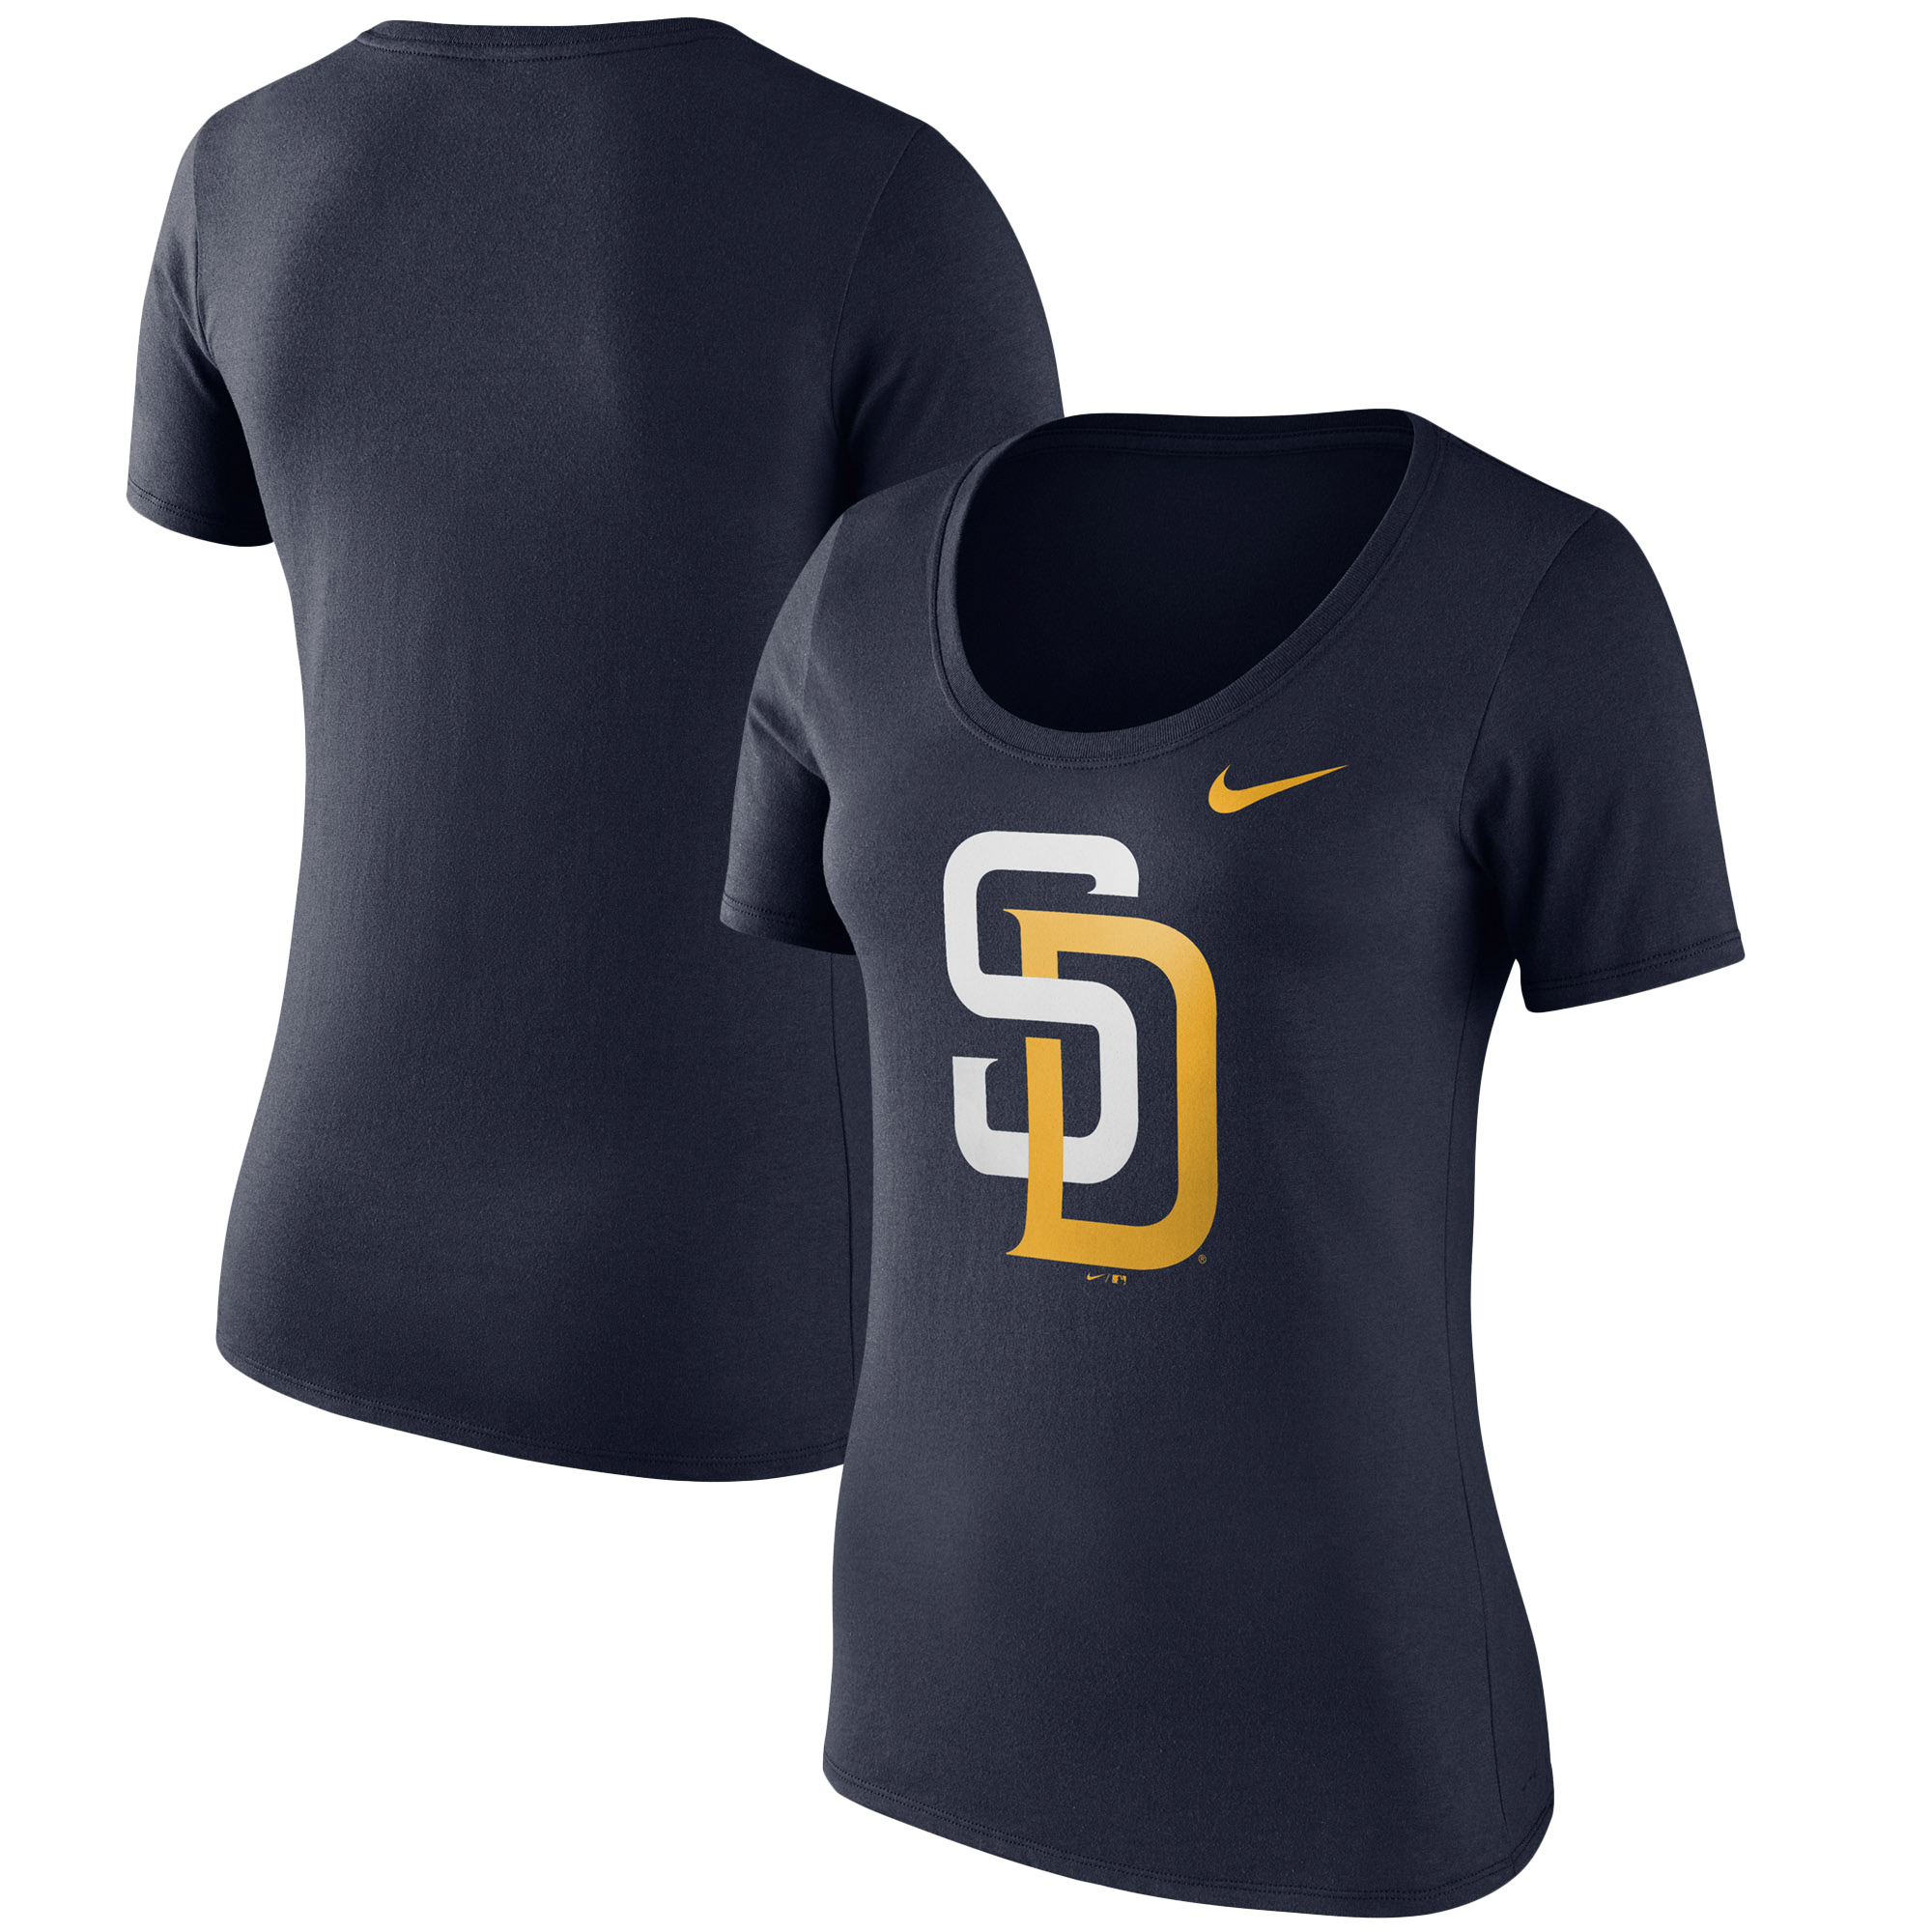 San Diego Padres Nike Women's Logo Scoop Neck T-Shirt - Navy